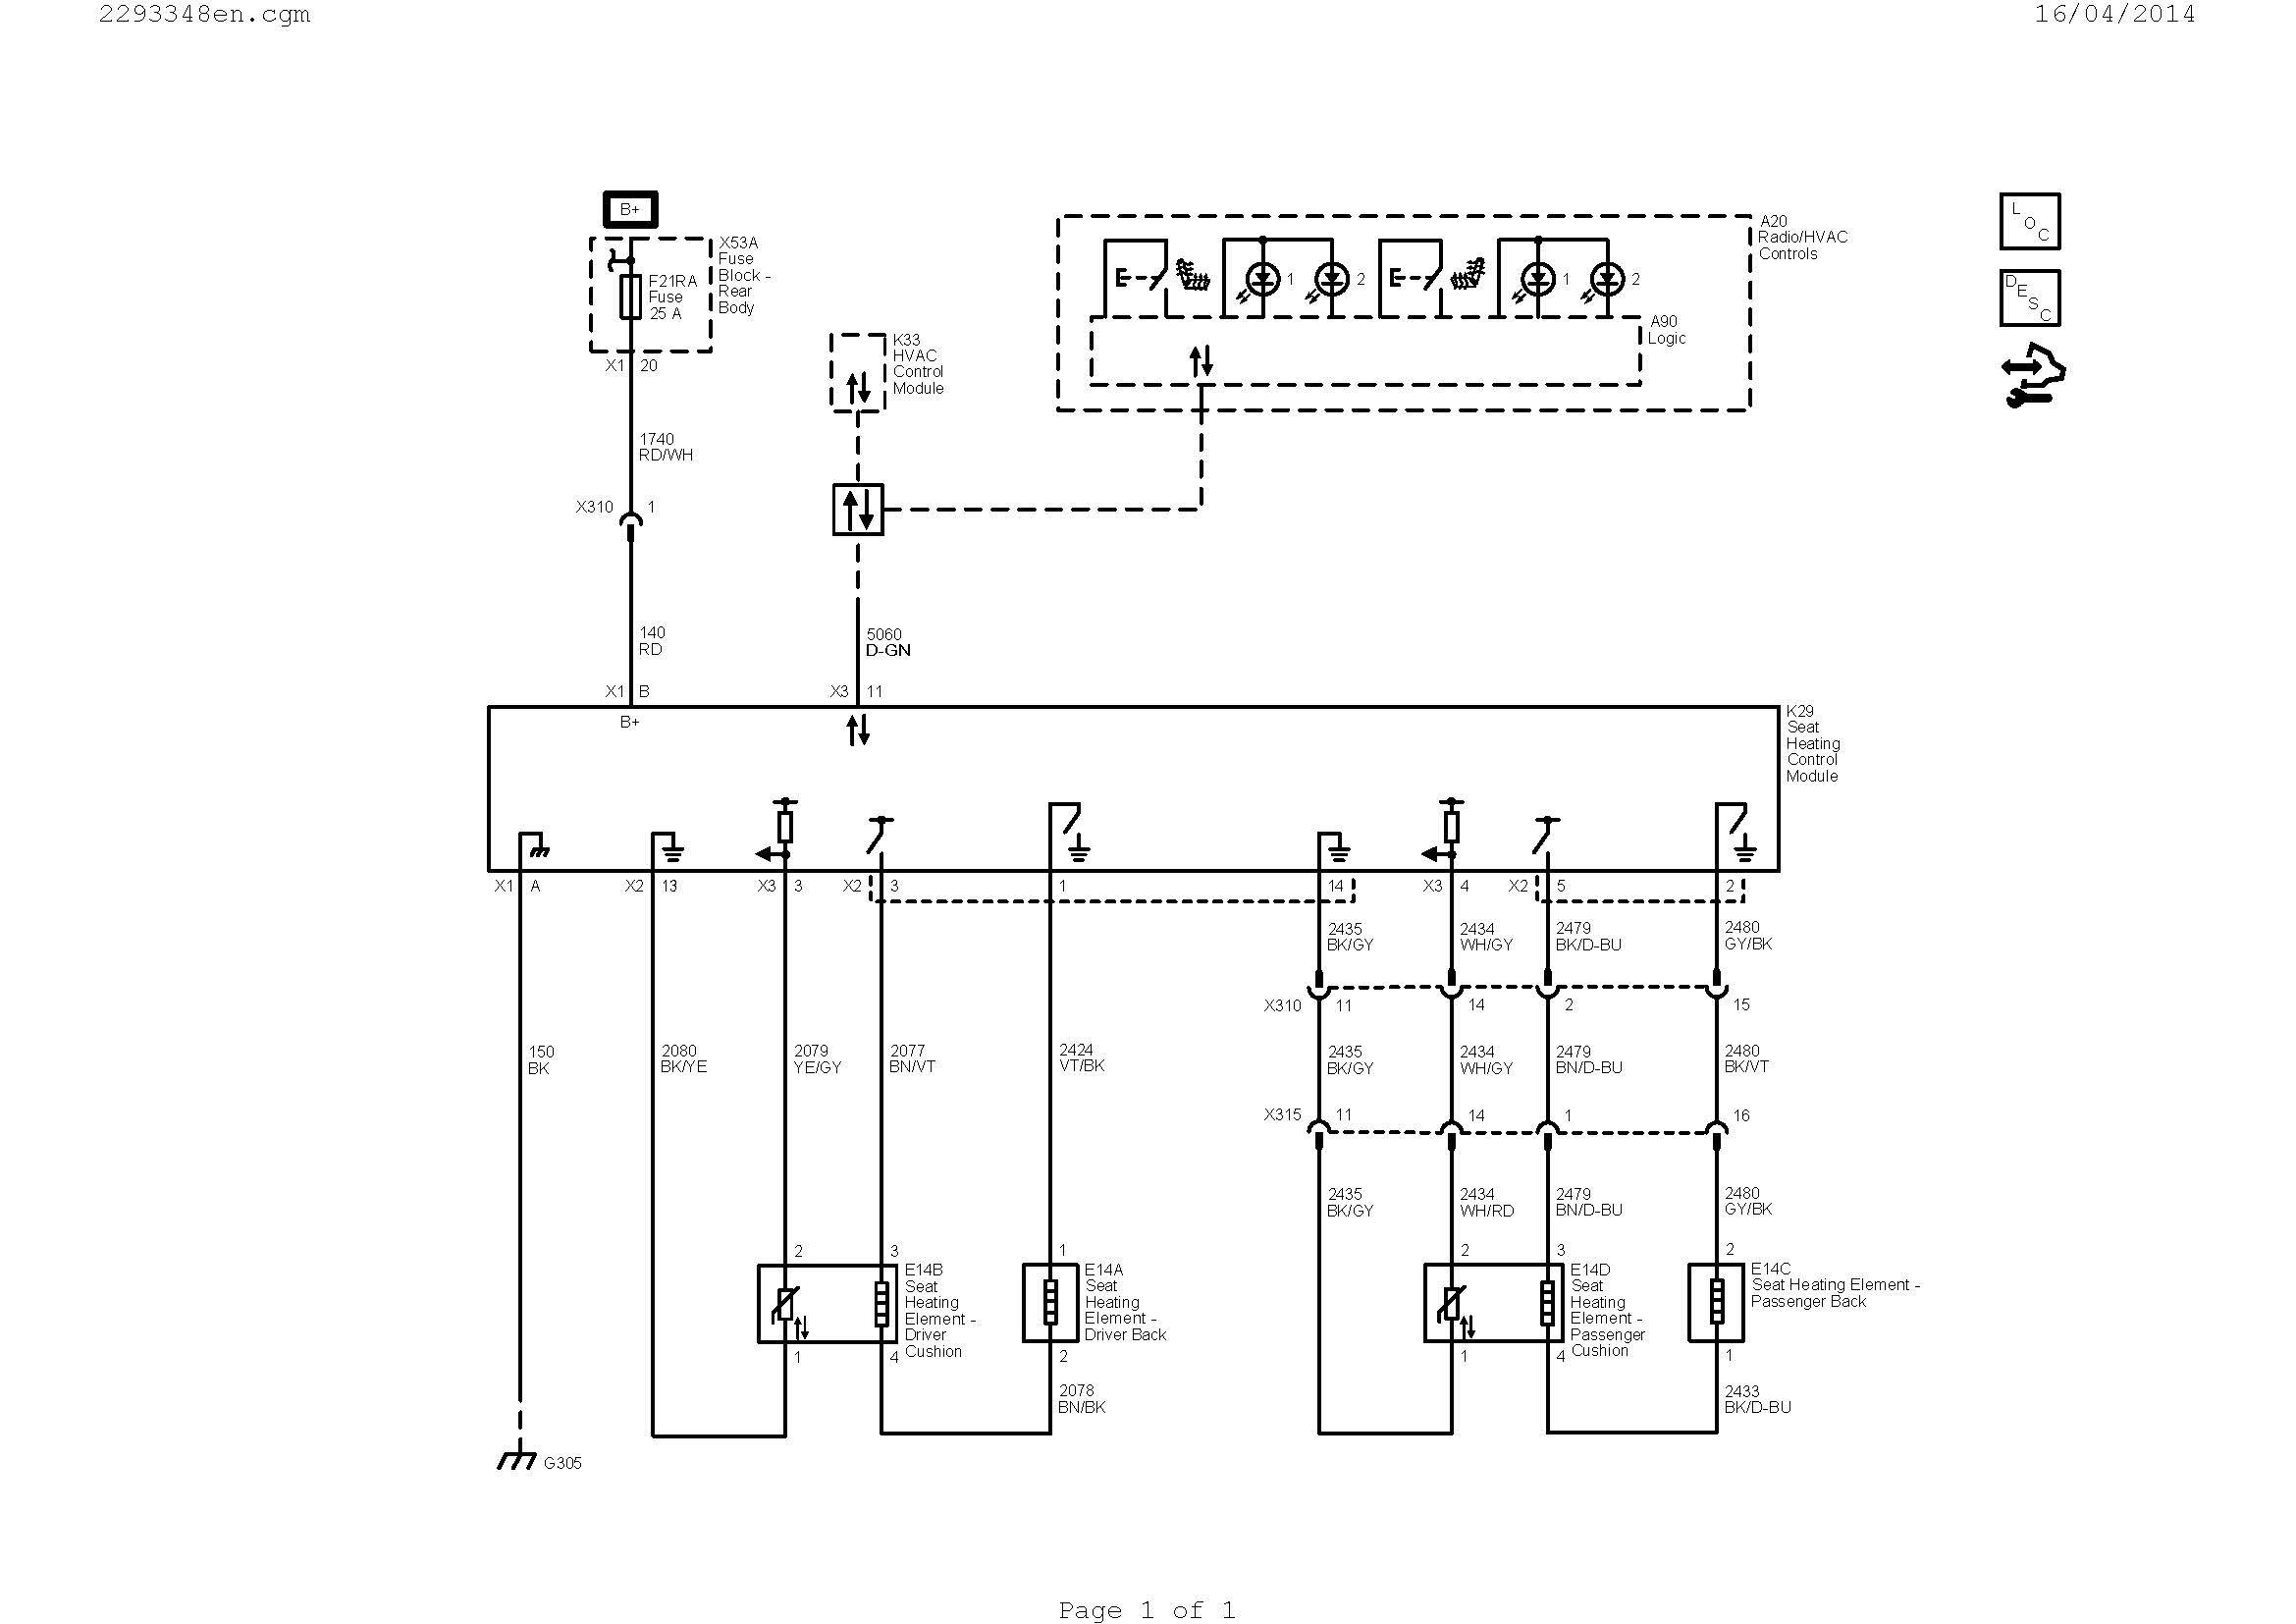 outside ac unit wiring diagram Download-air conditioner wiring diagram picture Collection Wiring A Ac Thermostat Diagram New Wiring Diagram Ac 16-c